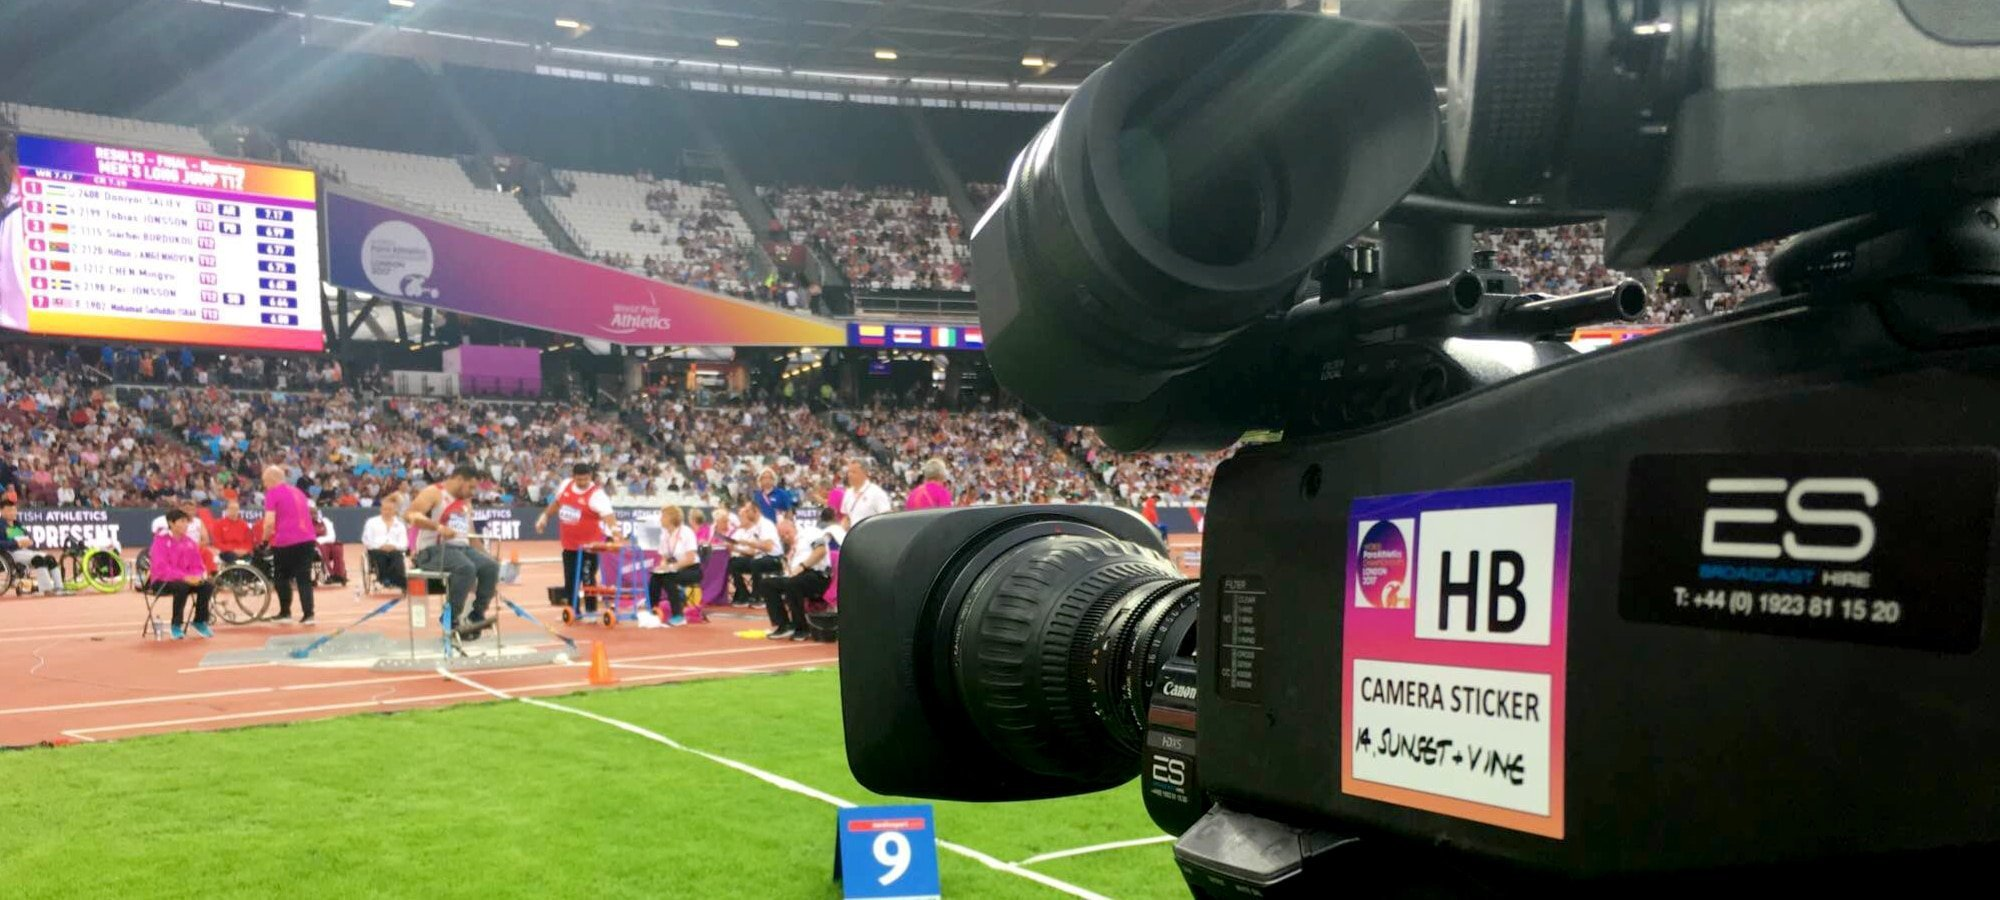 Sony HDC-4300 4K camera at the IPC World Para Athletics Championships in London